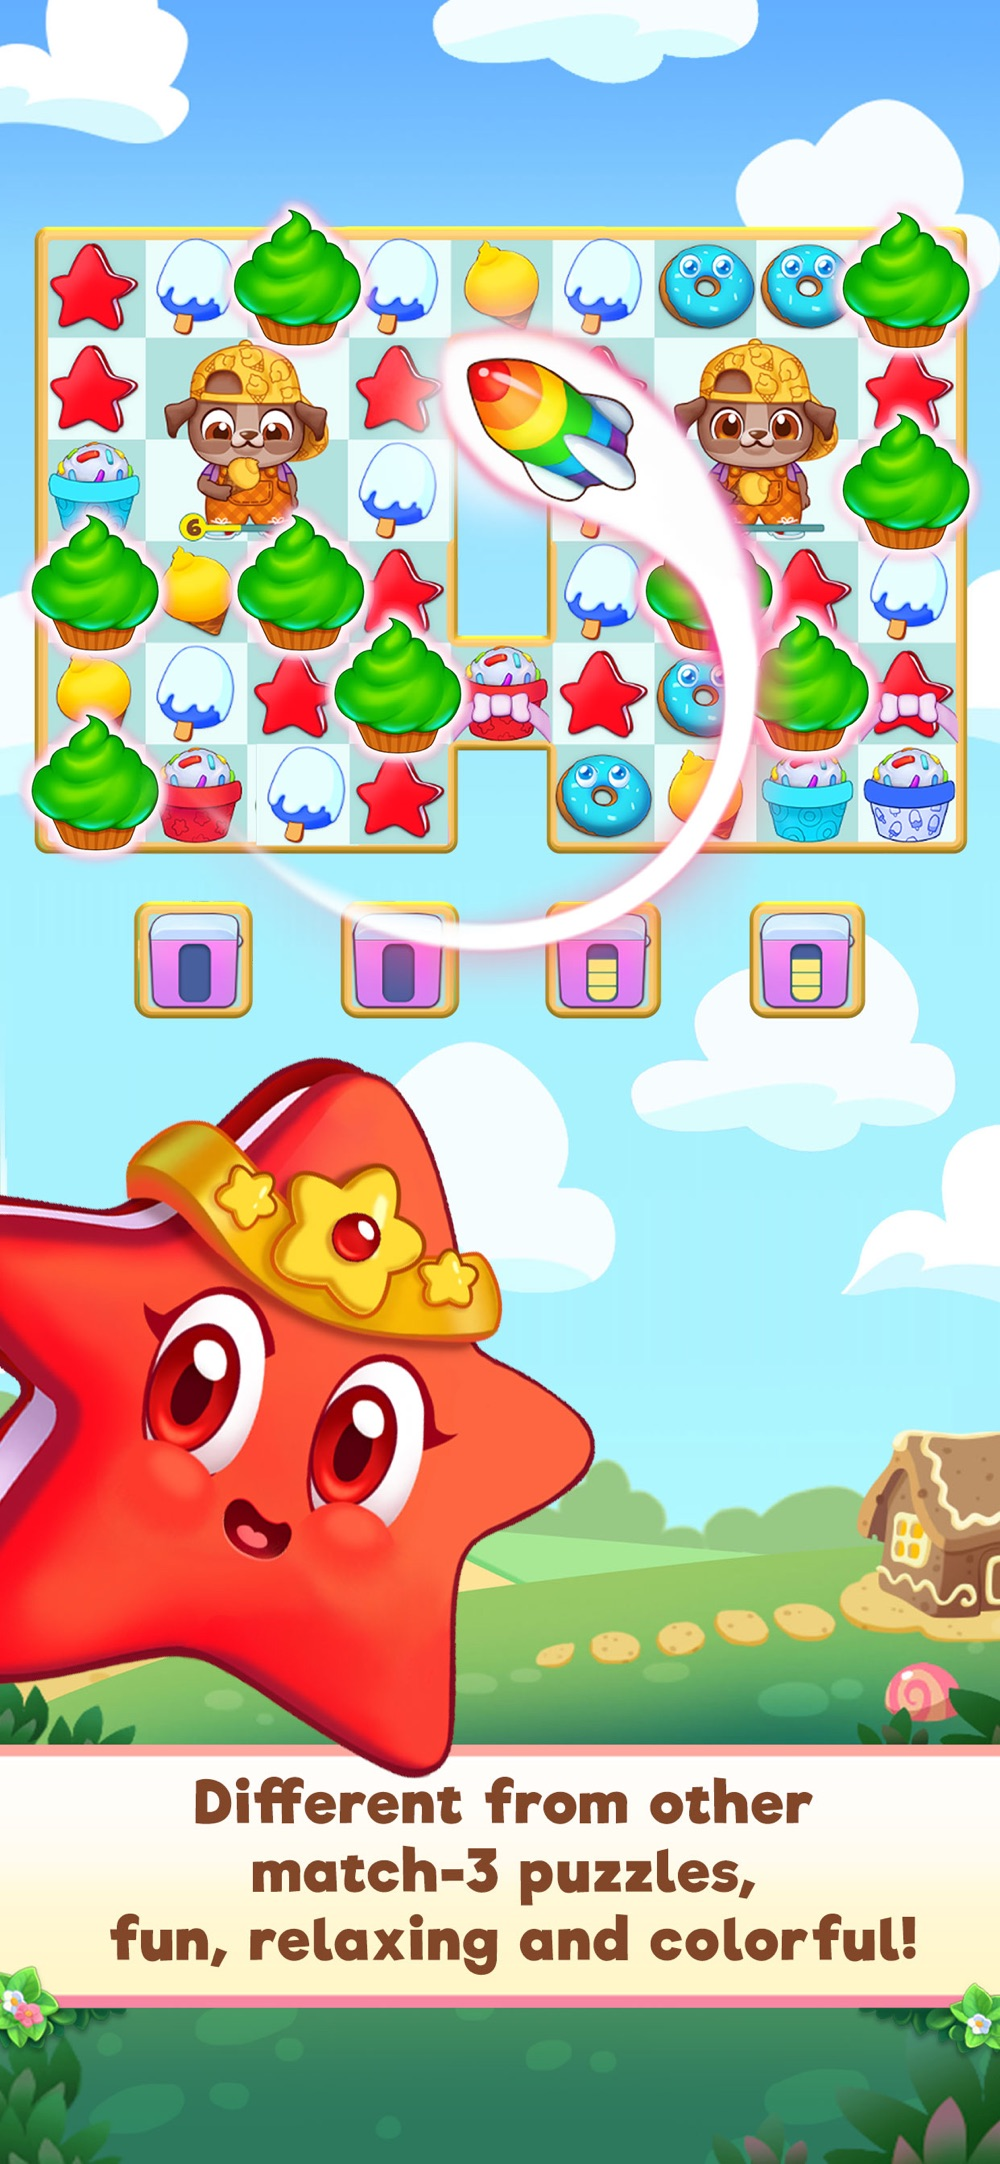 Candy Riddles: Match 3 Puzzle Cheat Codes